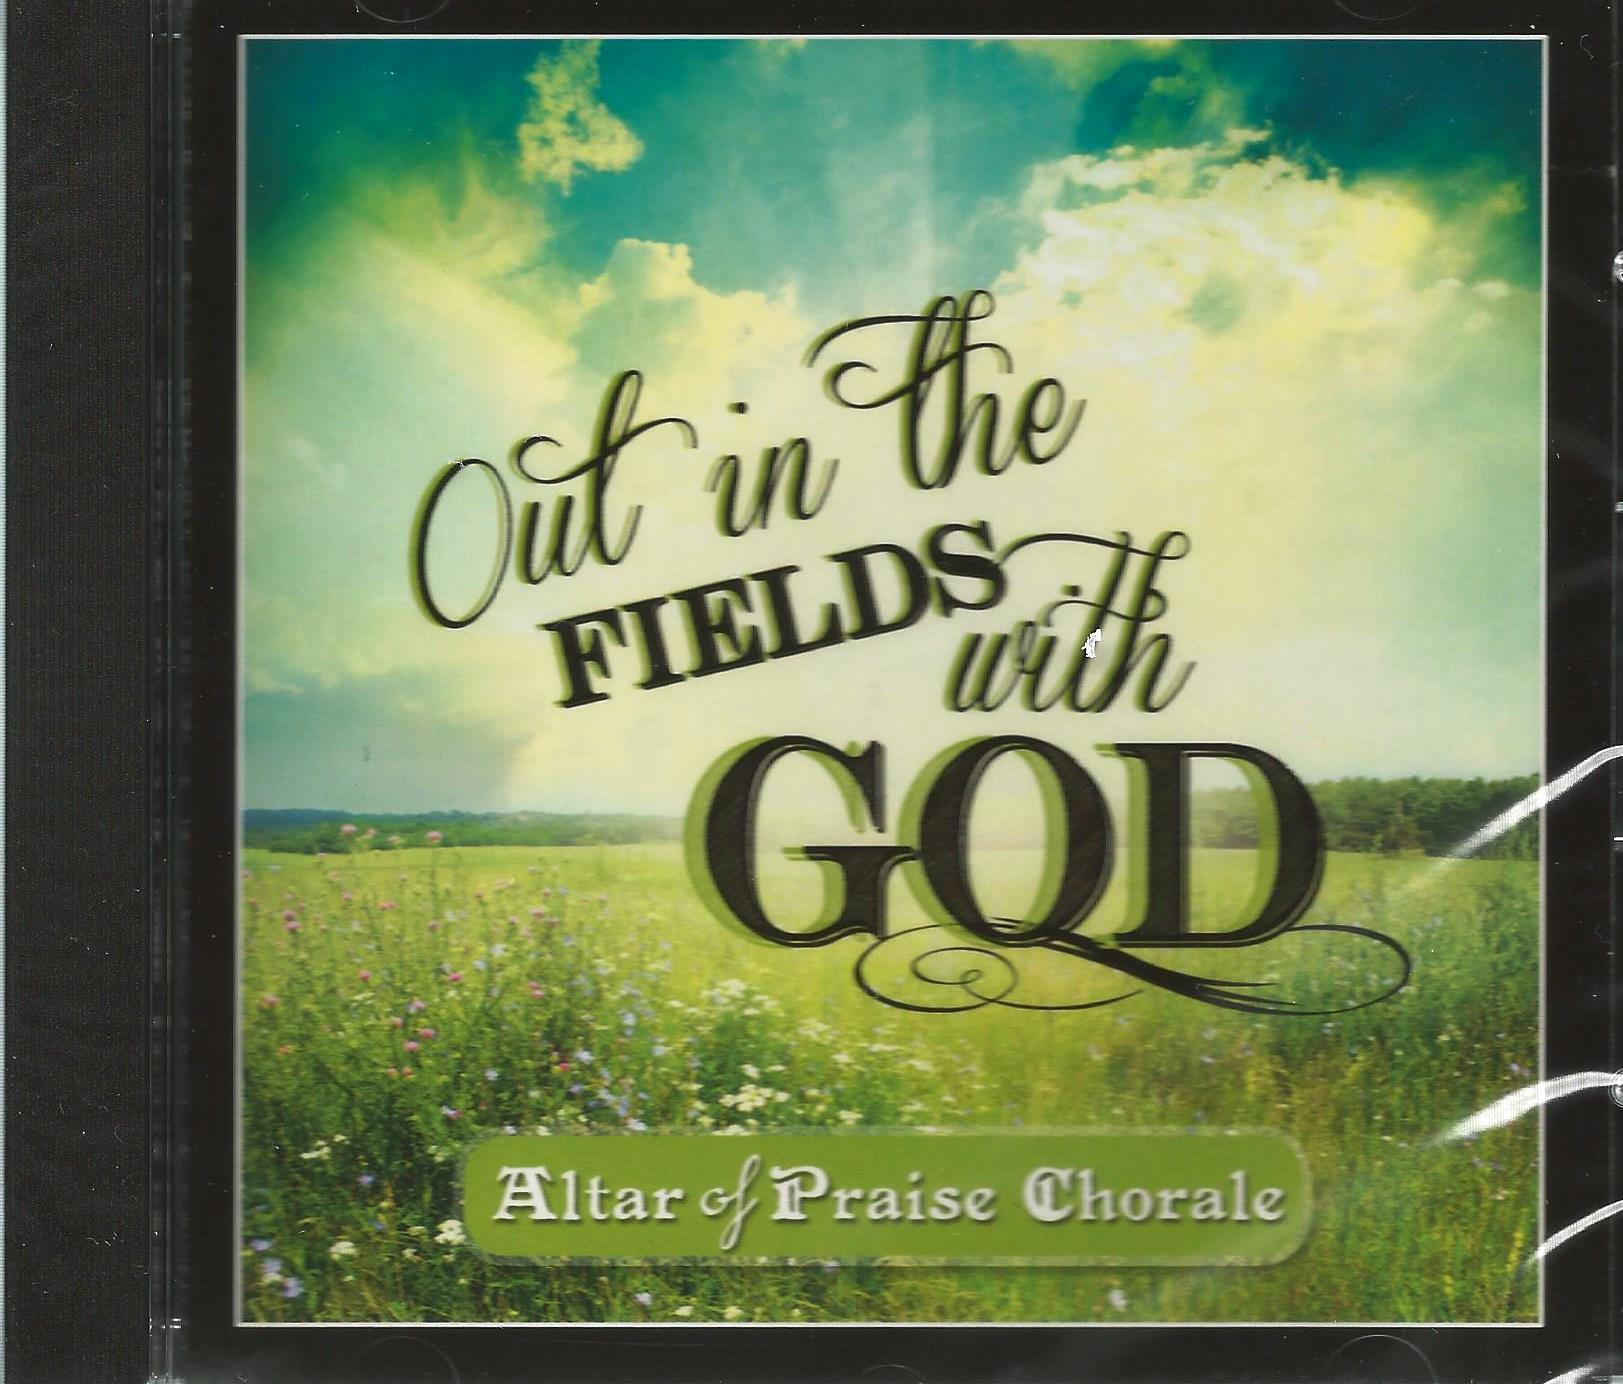 OUT IN THE FIELDS WITH GOD Altar of Praise Chorale